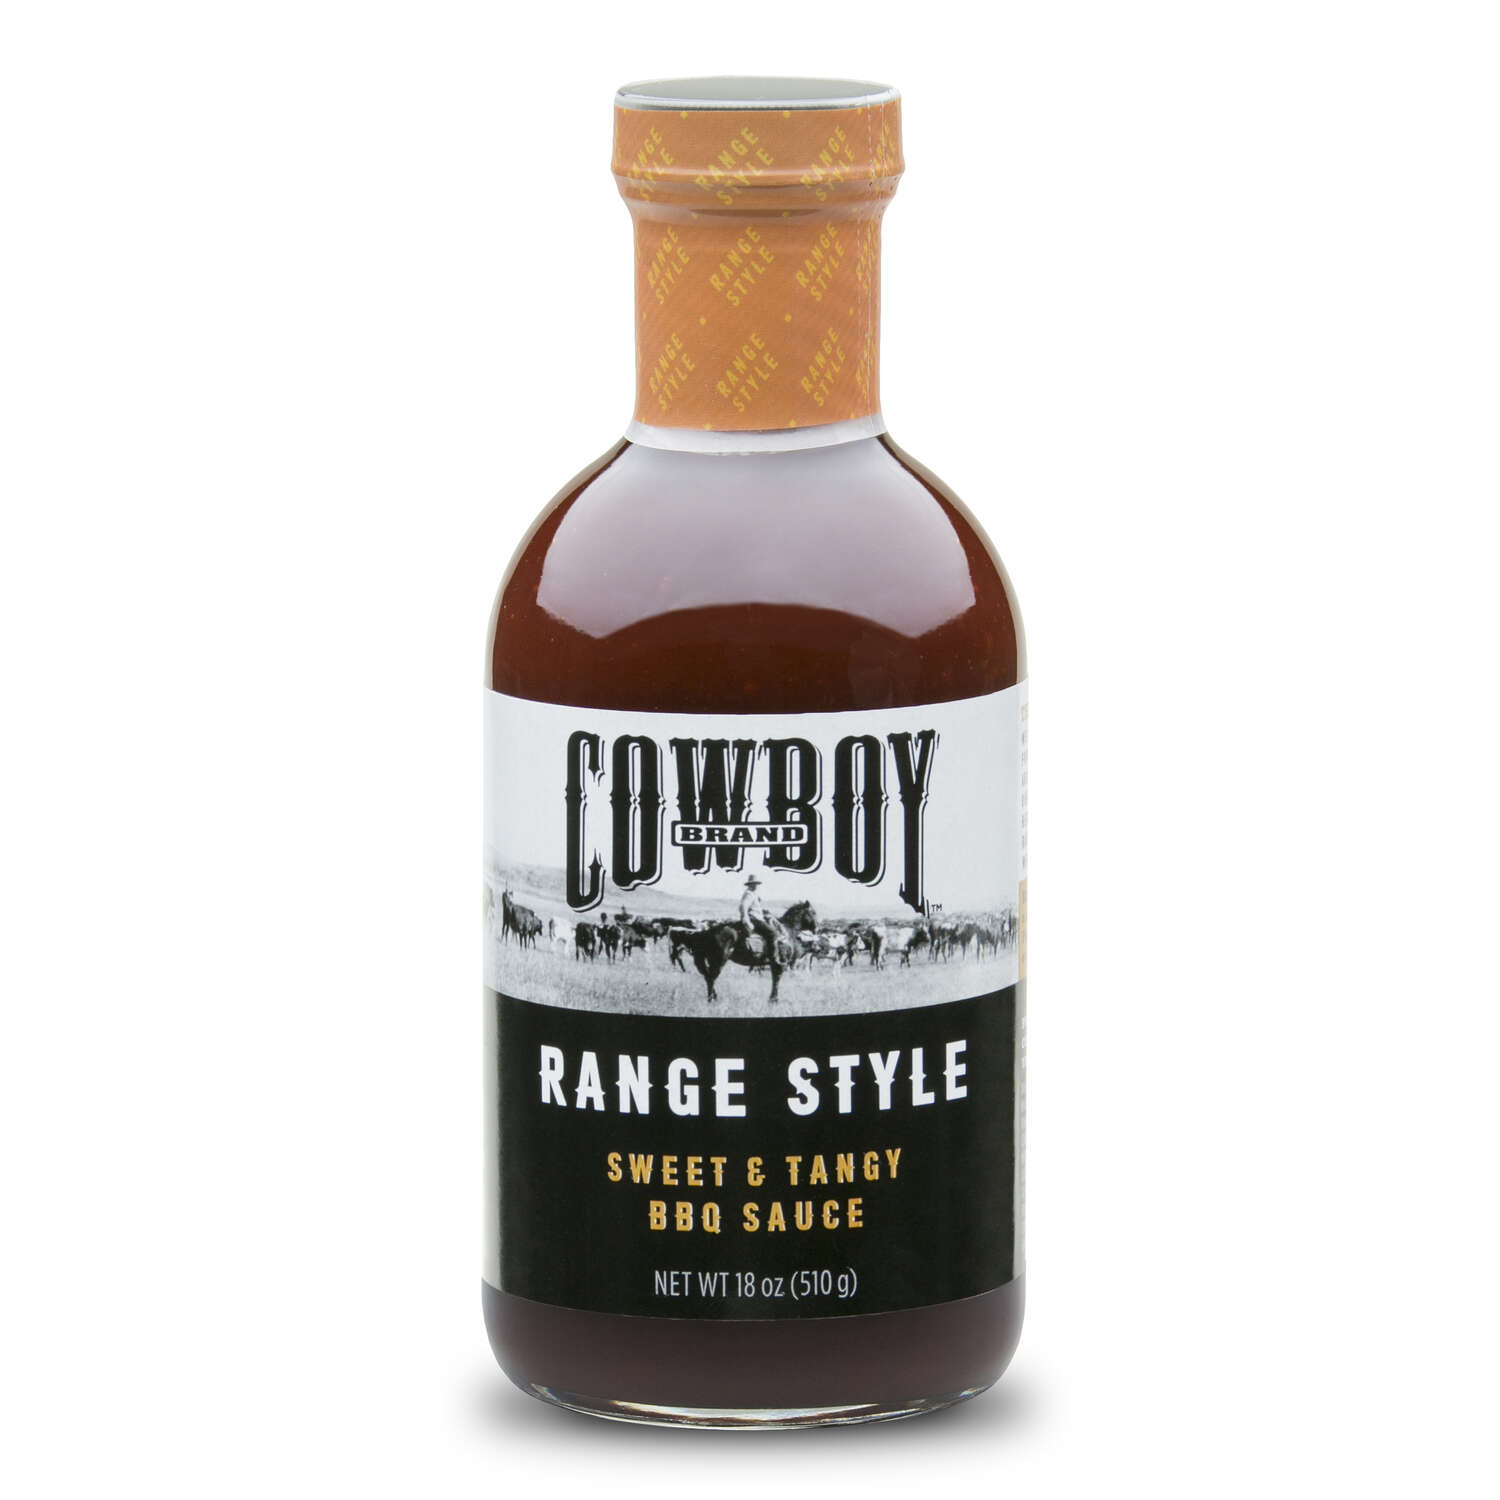 Cowboy Range Style Sweet and Tangy BBQ Sauce 18 oz.